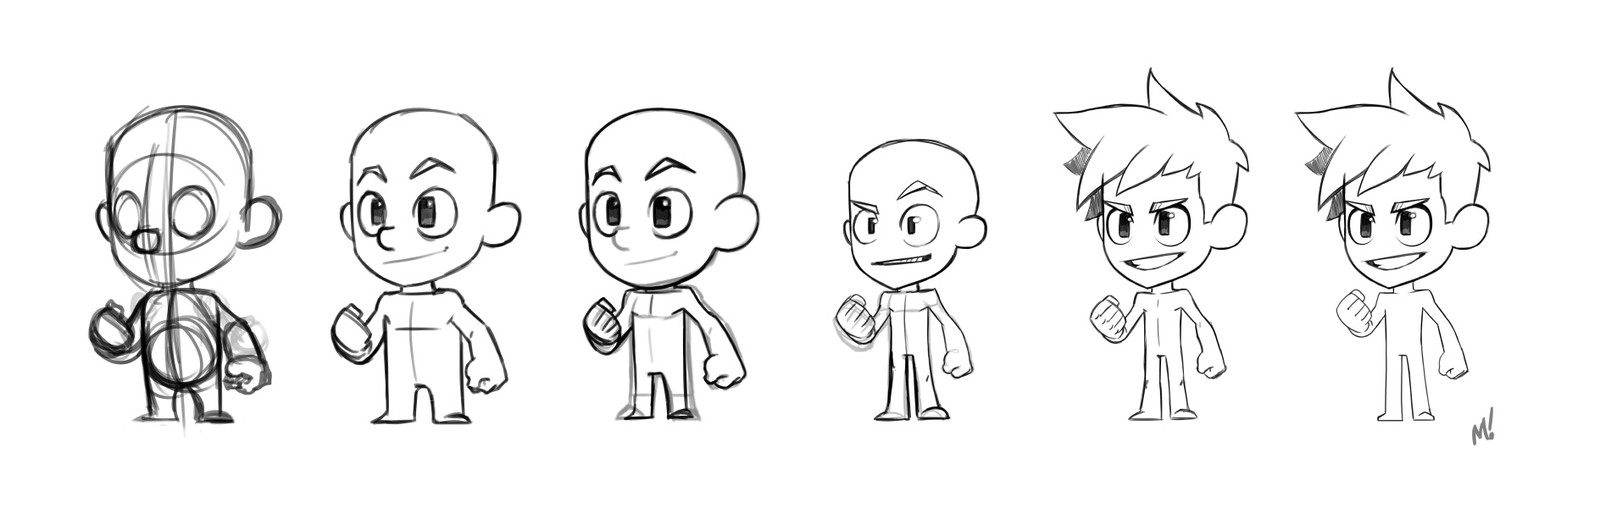 I shifted to ignoring the box for a moment and trying to find a pleasing generic body type. This show the separate layers in a PSD that would normally be stacked on top of each other.  This is a way I sometimes slowly mold a base character.